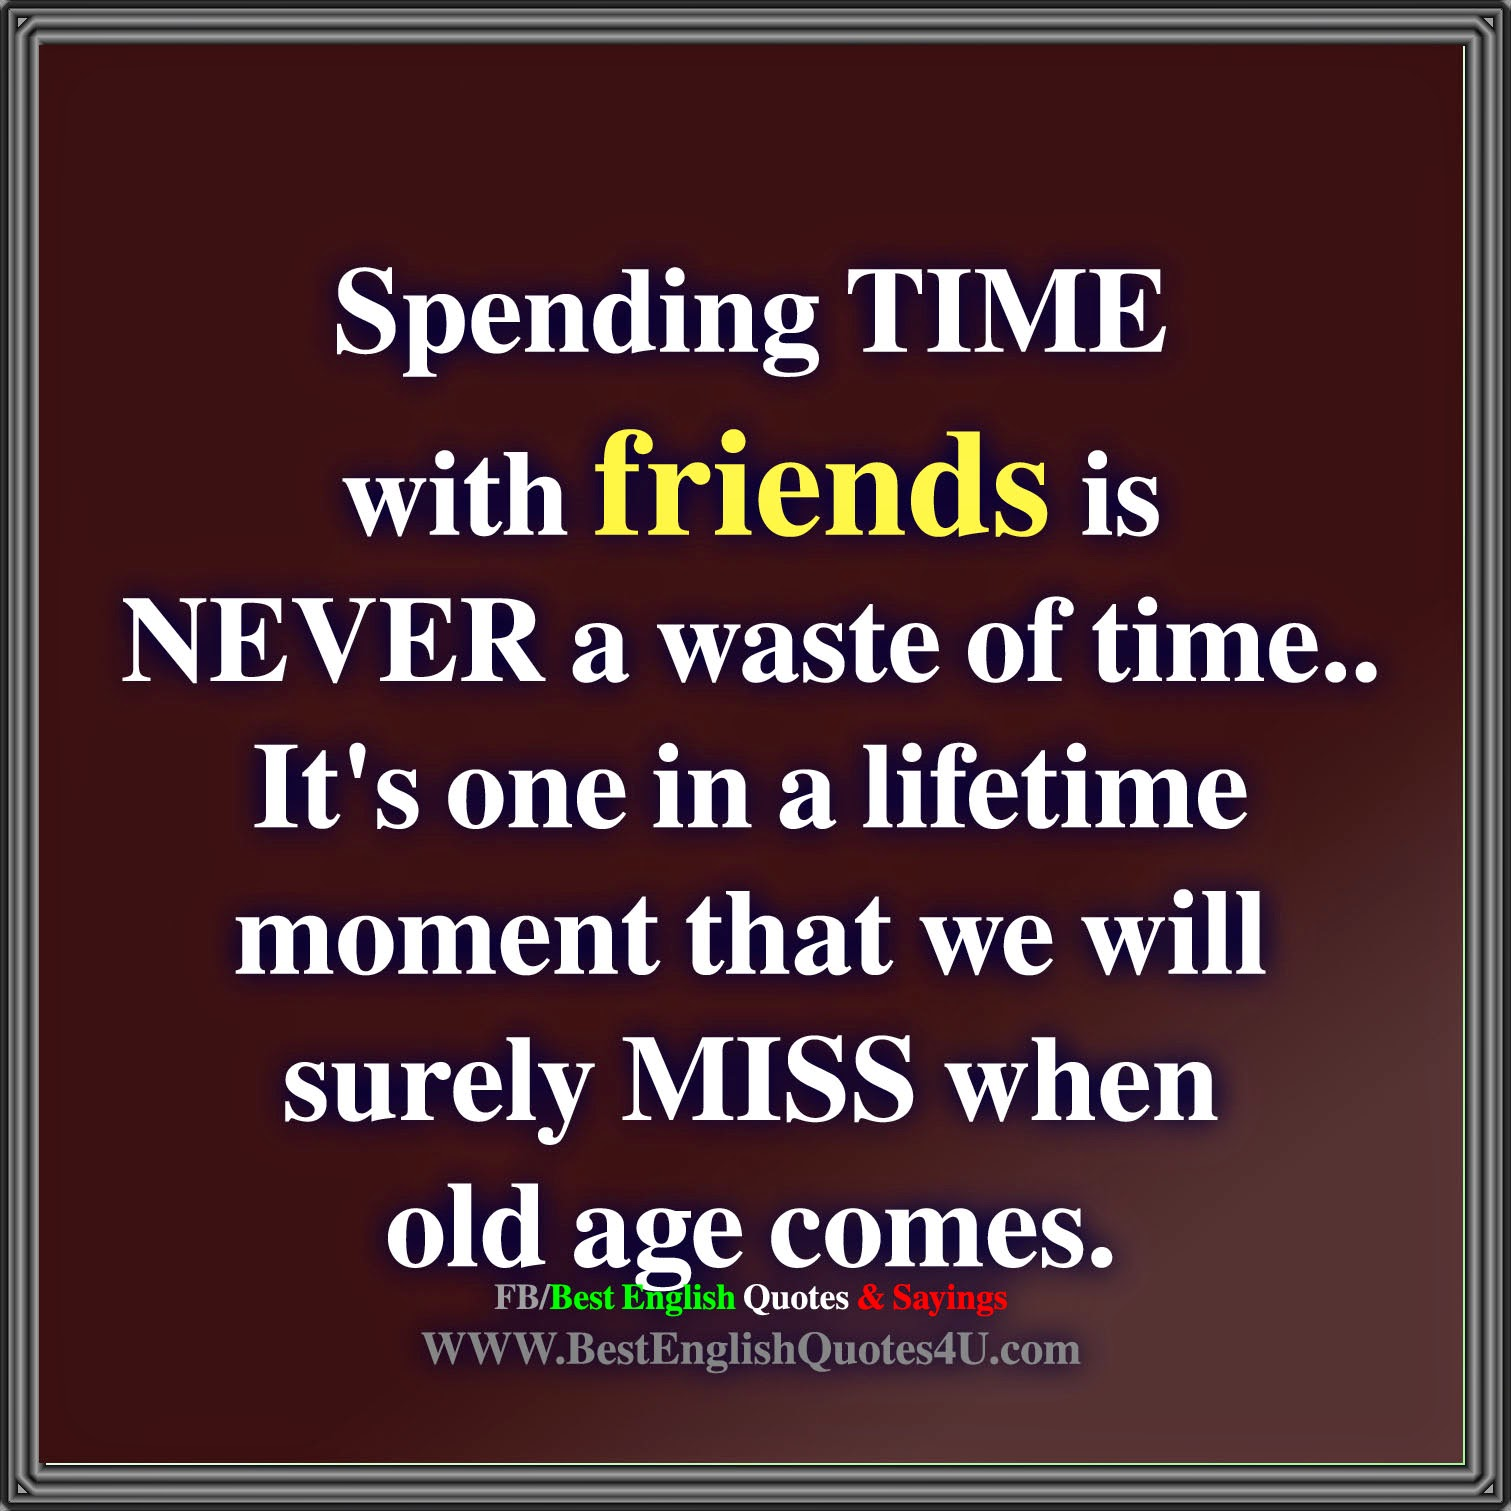 Best English Quotes & Sayings: Spending time with friends is ...